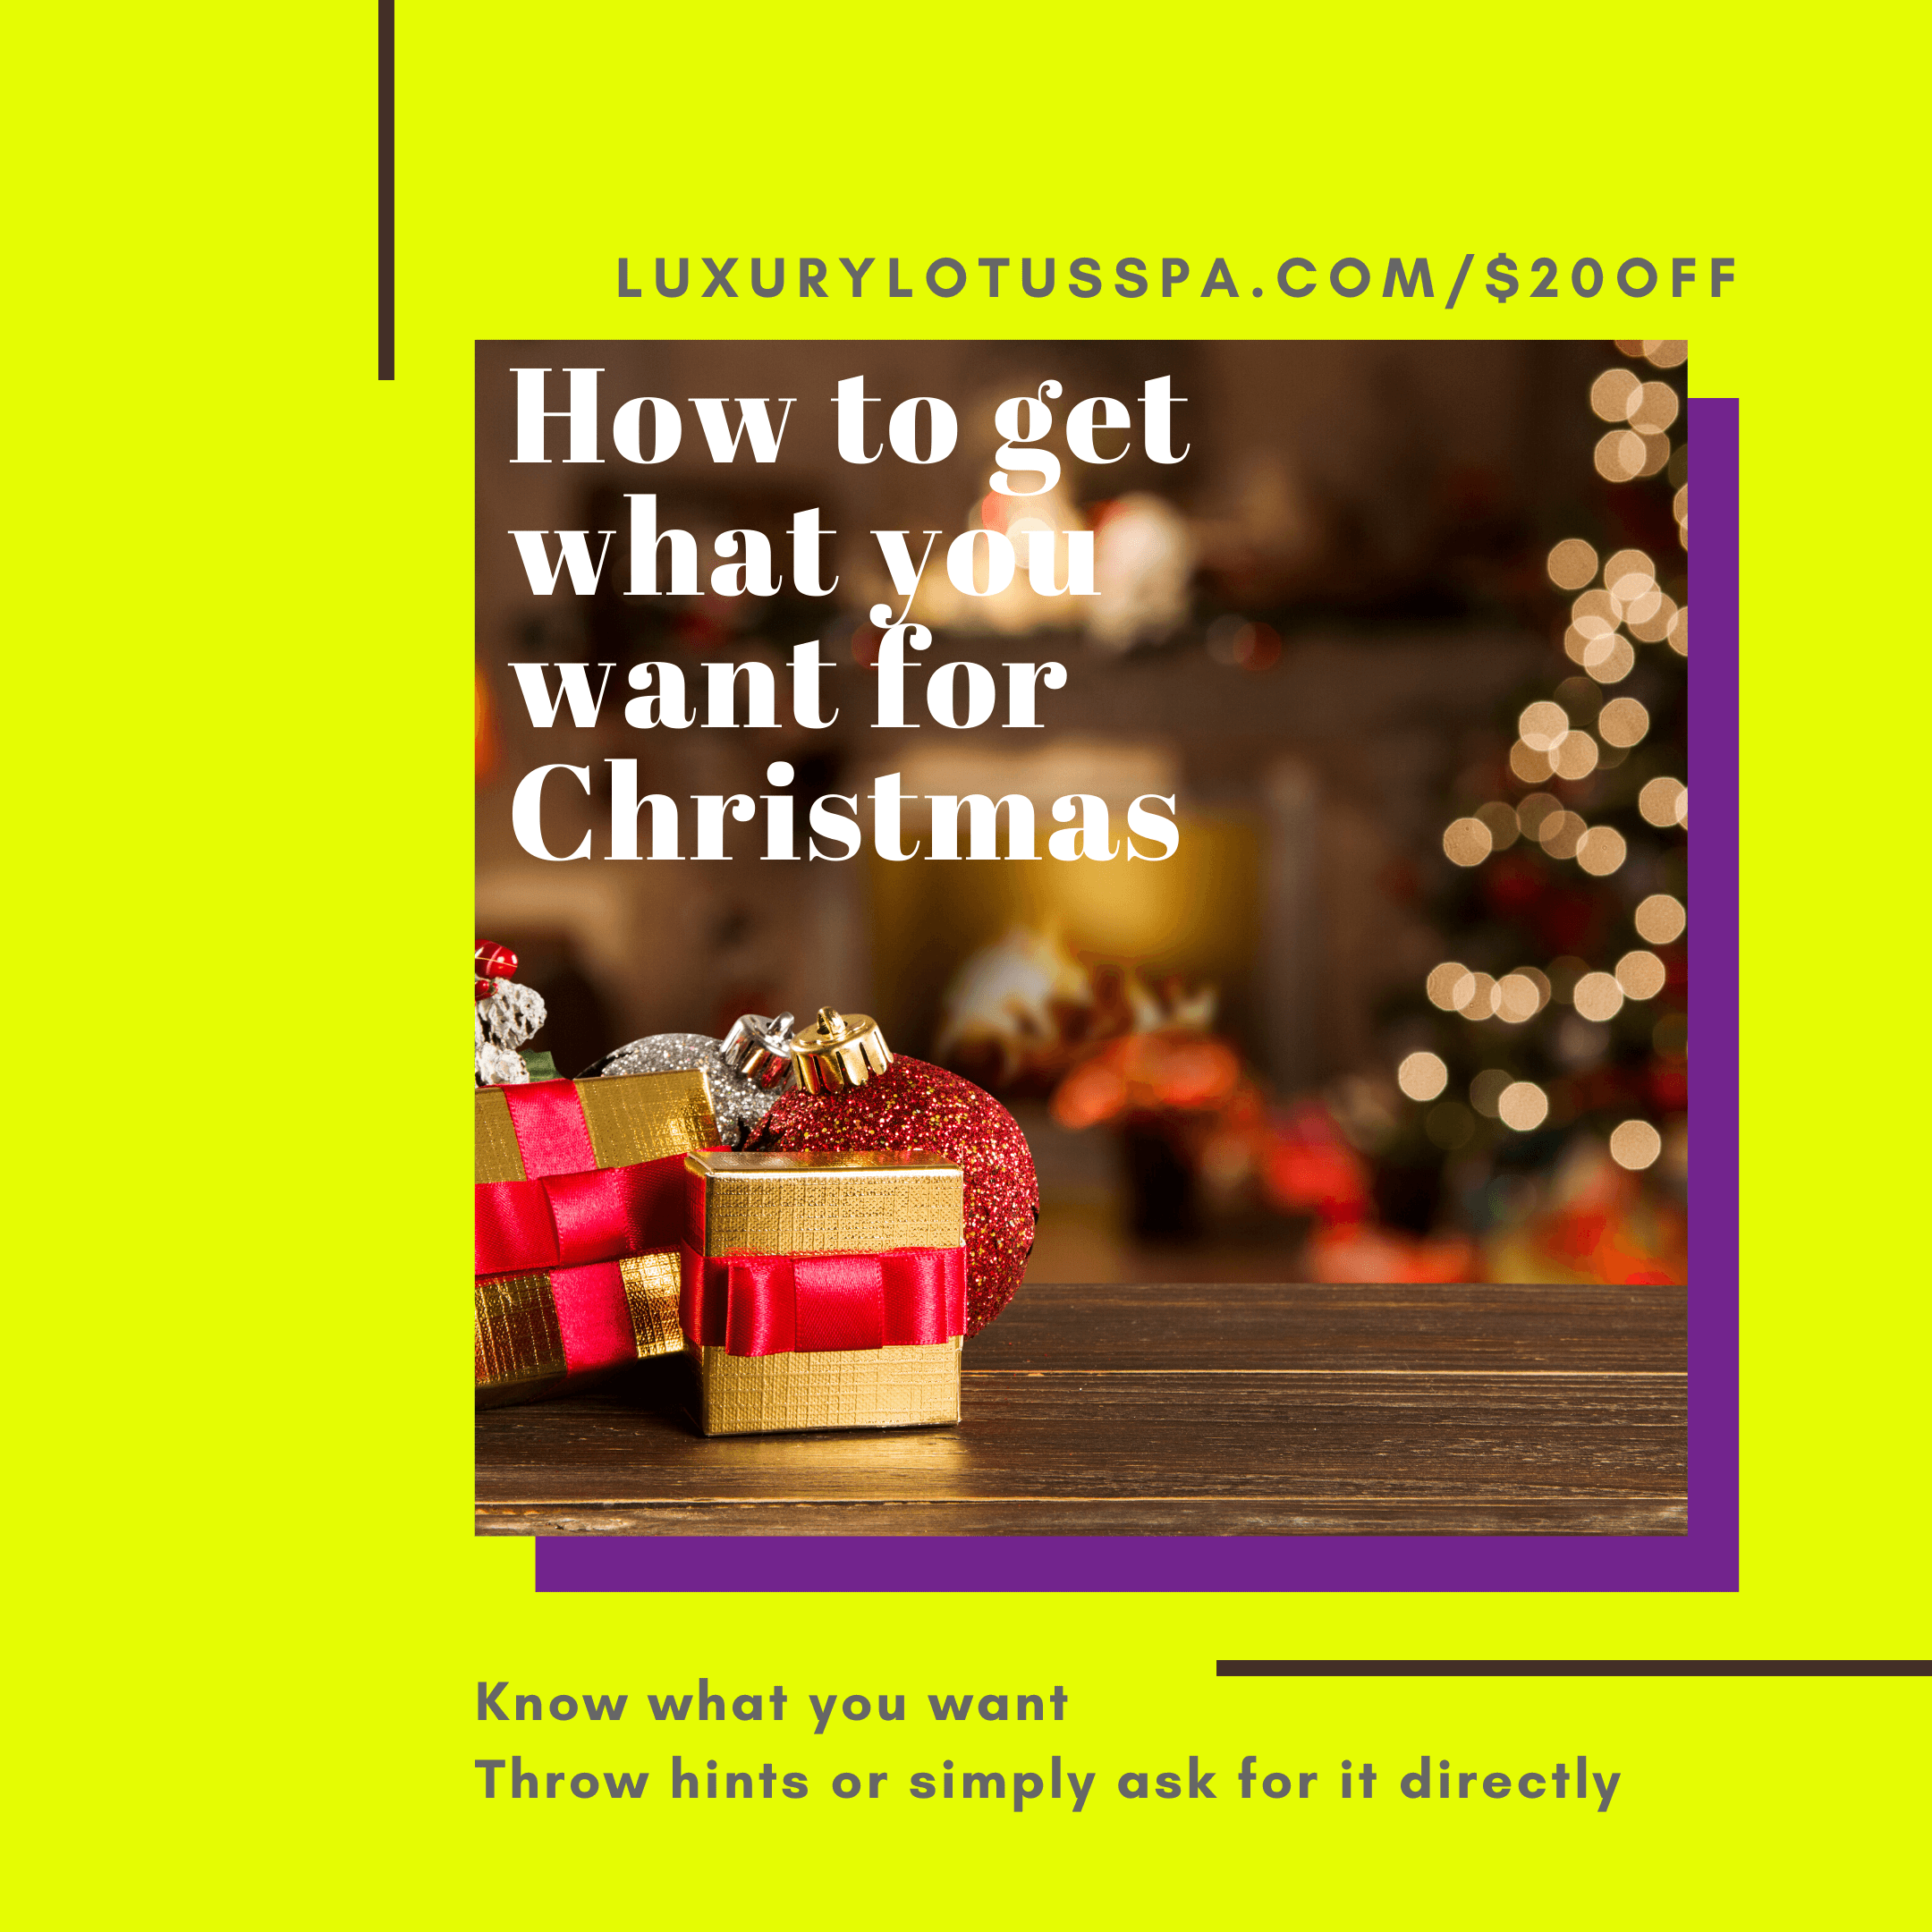 How to Get Exactly what you want for Christmas, How to Get Exactly what you want for Christmas